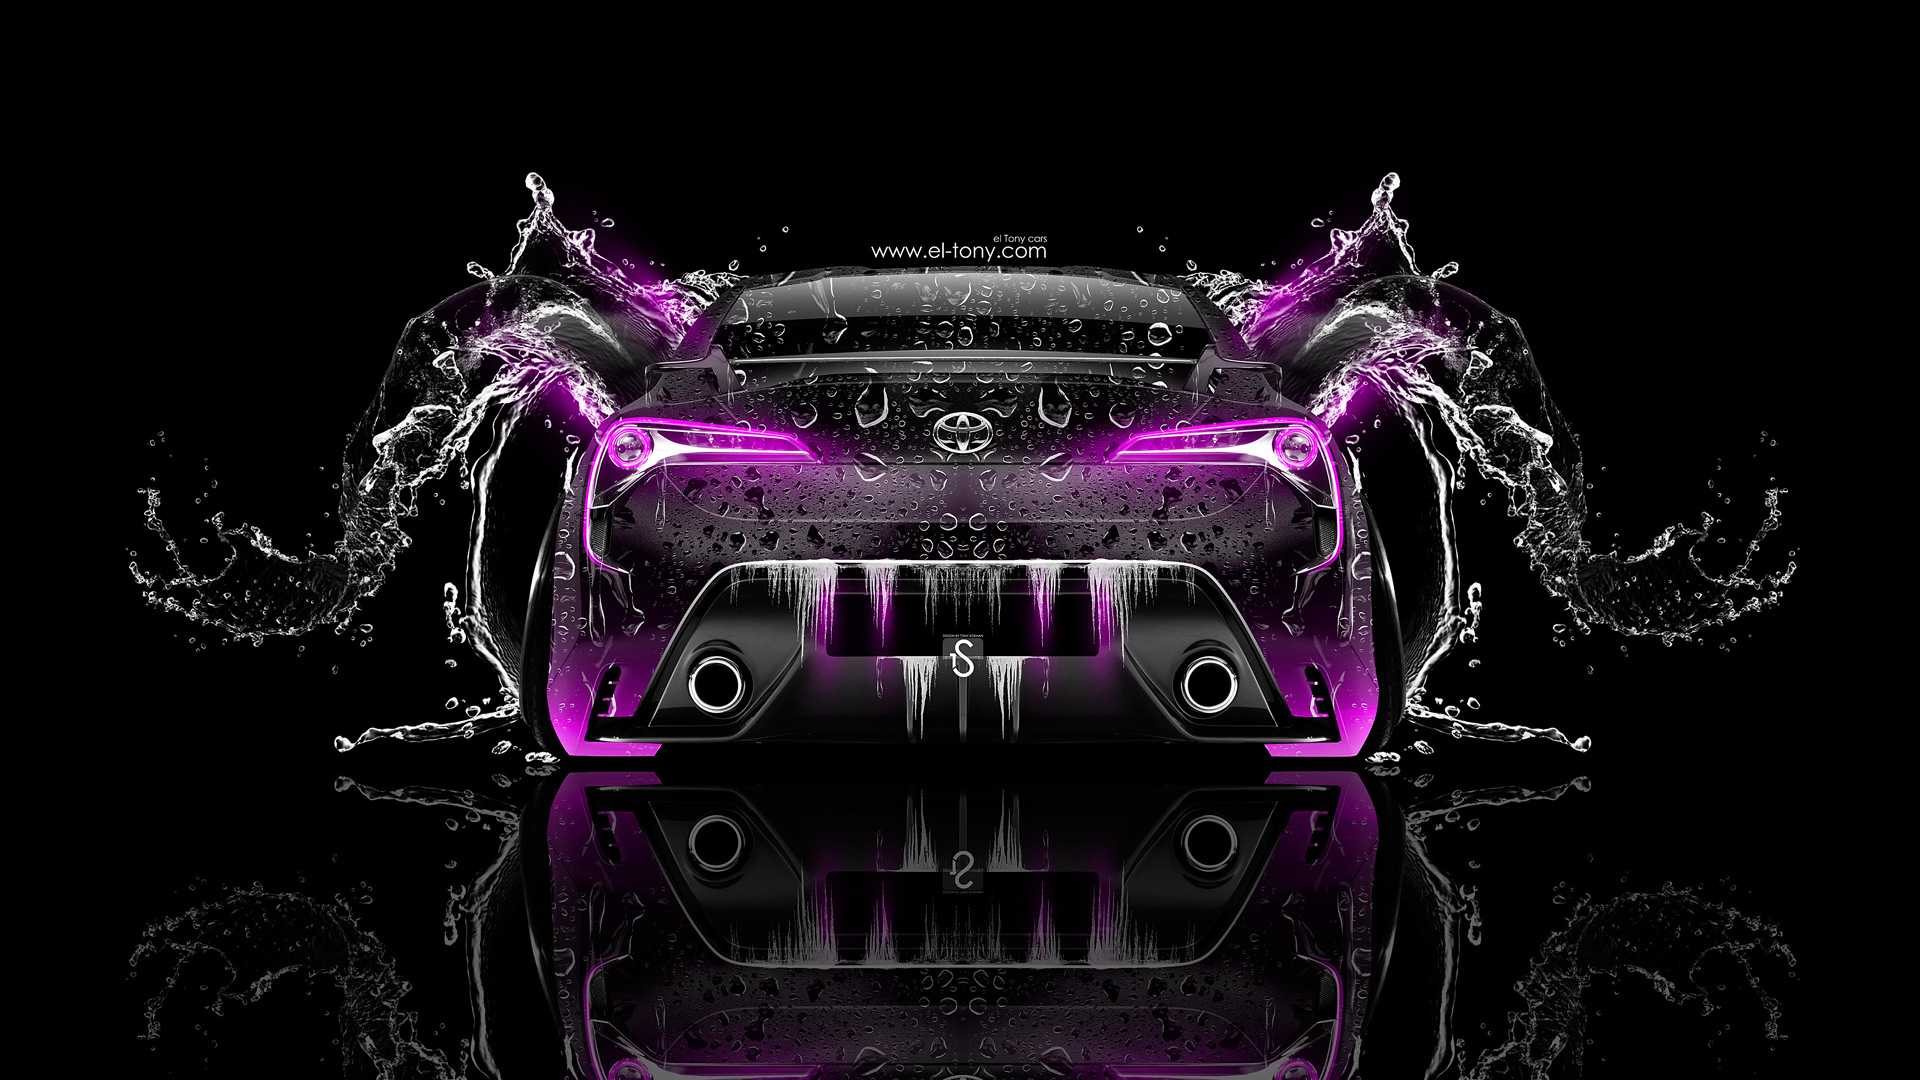 Toyota-FT-86-Back-Water-Car-2014-Pink-Neon-design-by-Tony-Kokhan-[www.el-tony.com]